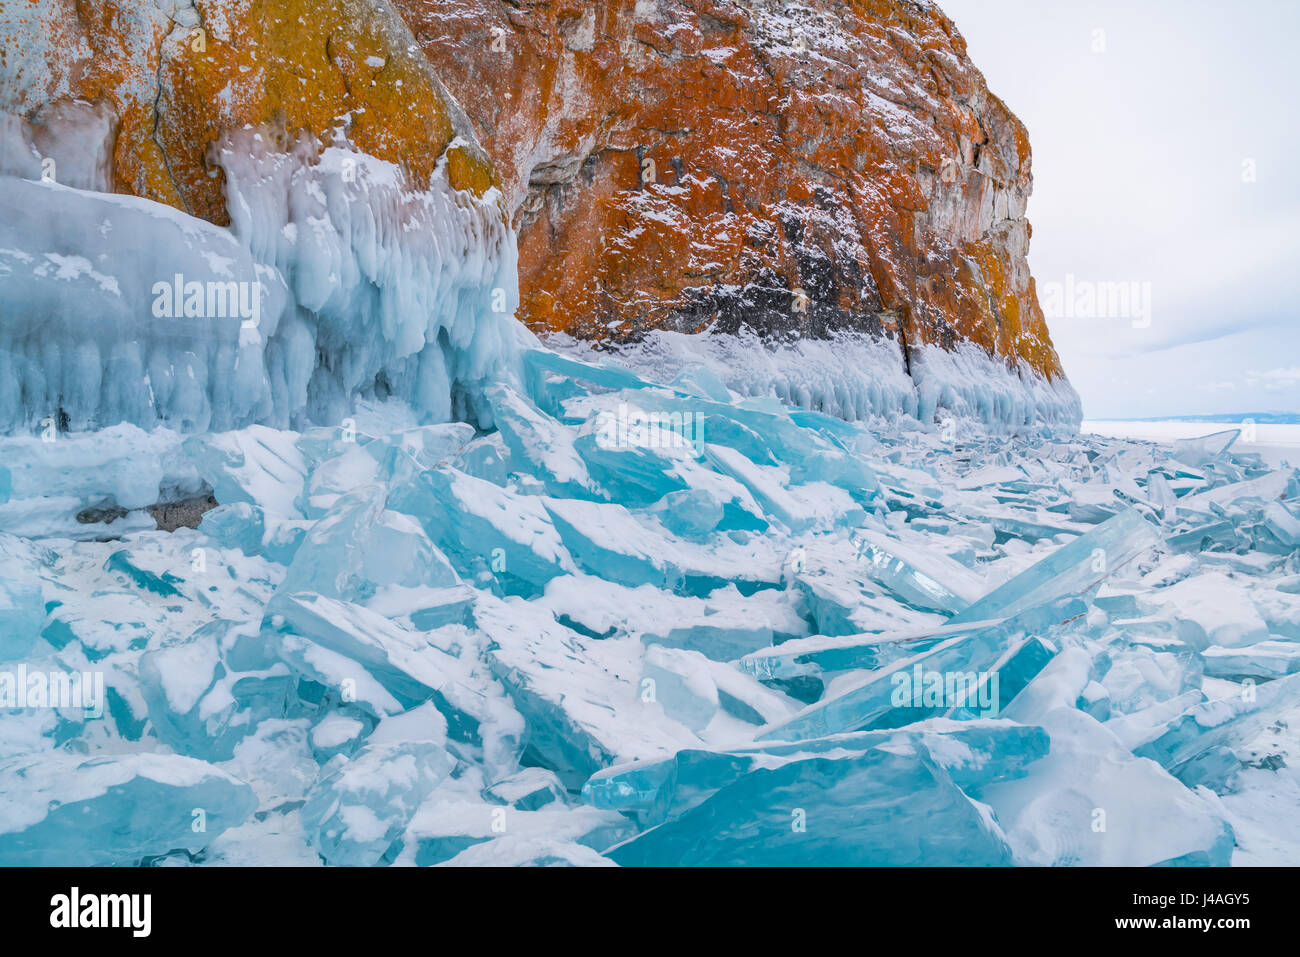 Blue frozen water covered with snow and icicles at rocky island in Lake Baikal, Russia - Stock Image